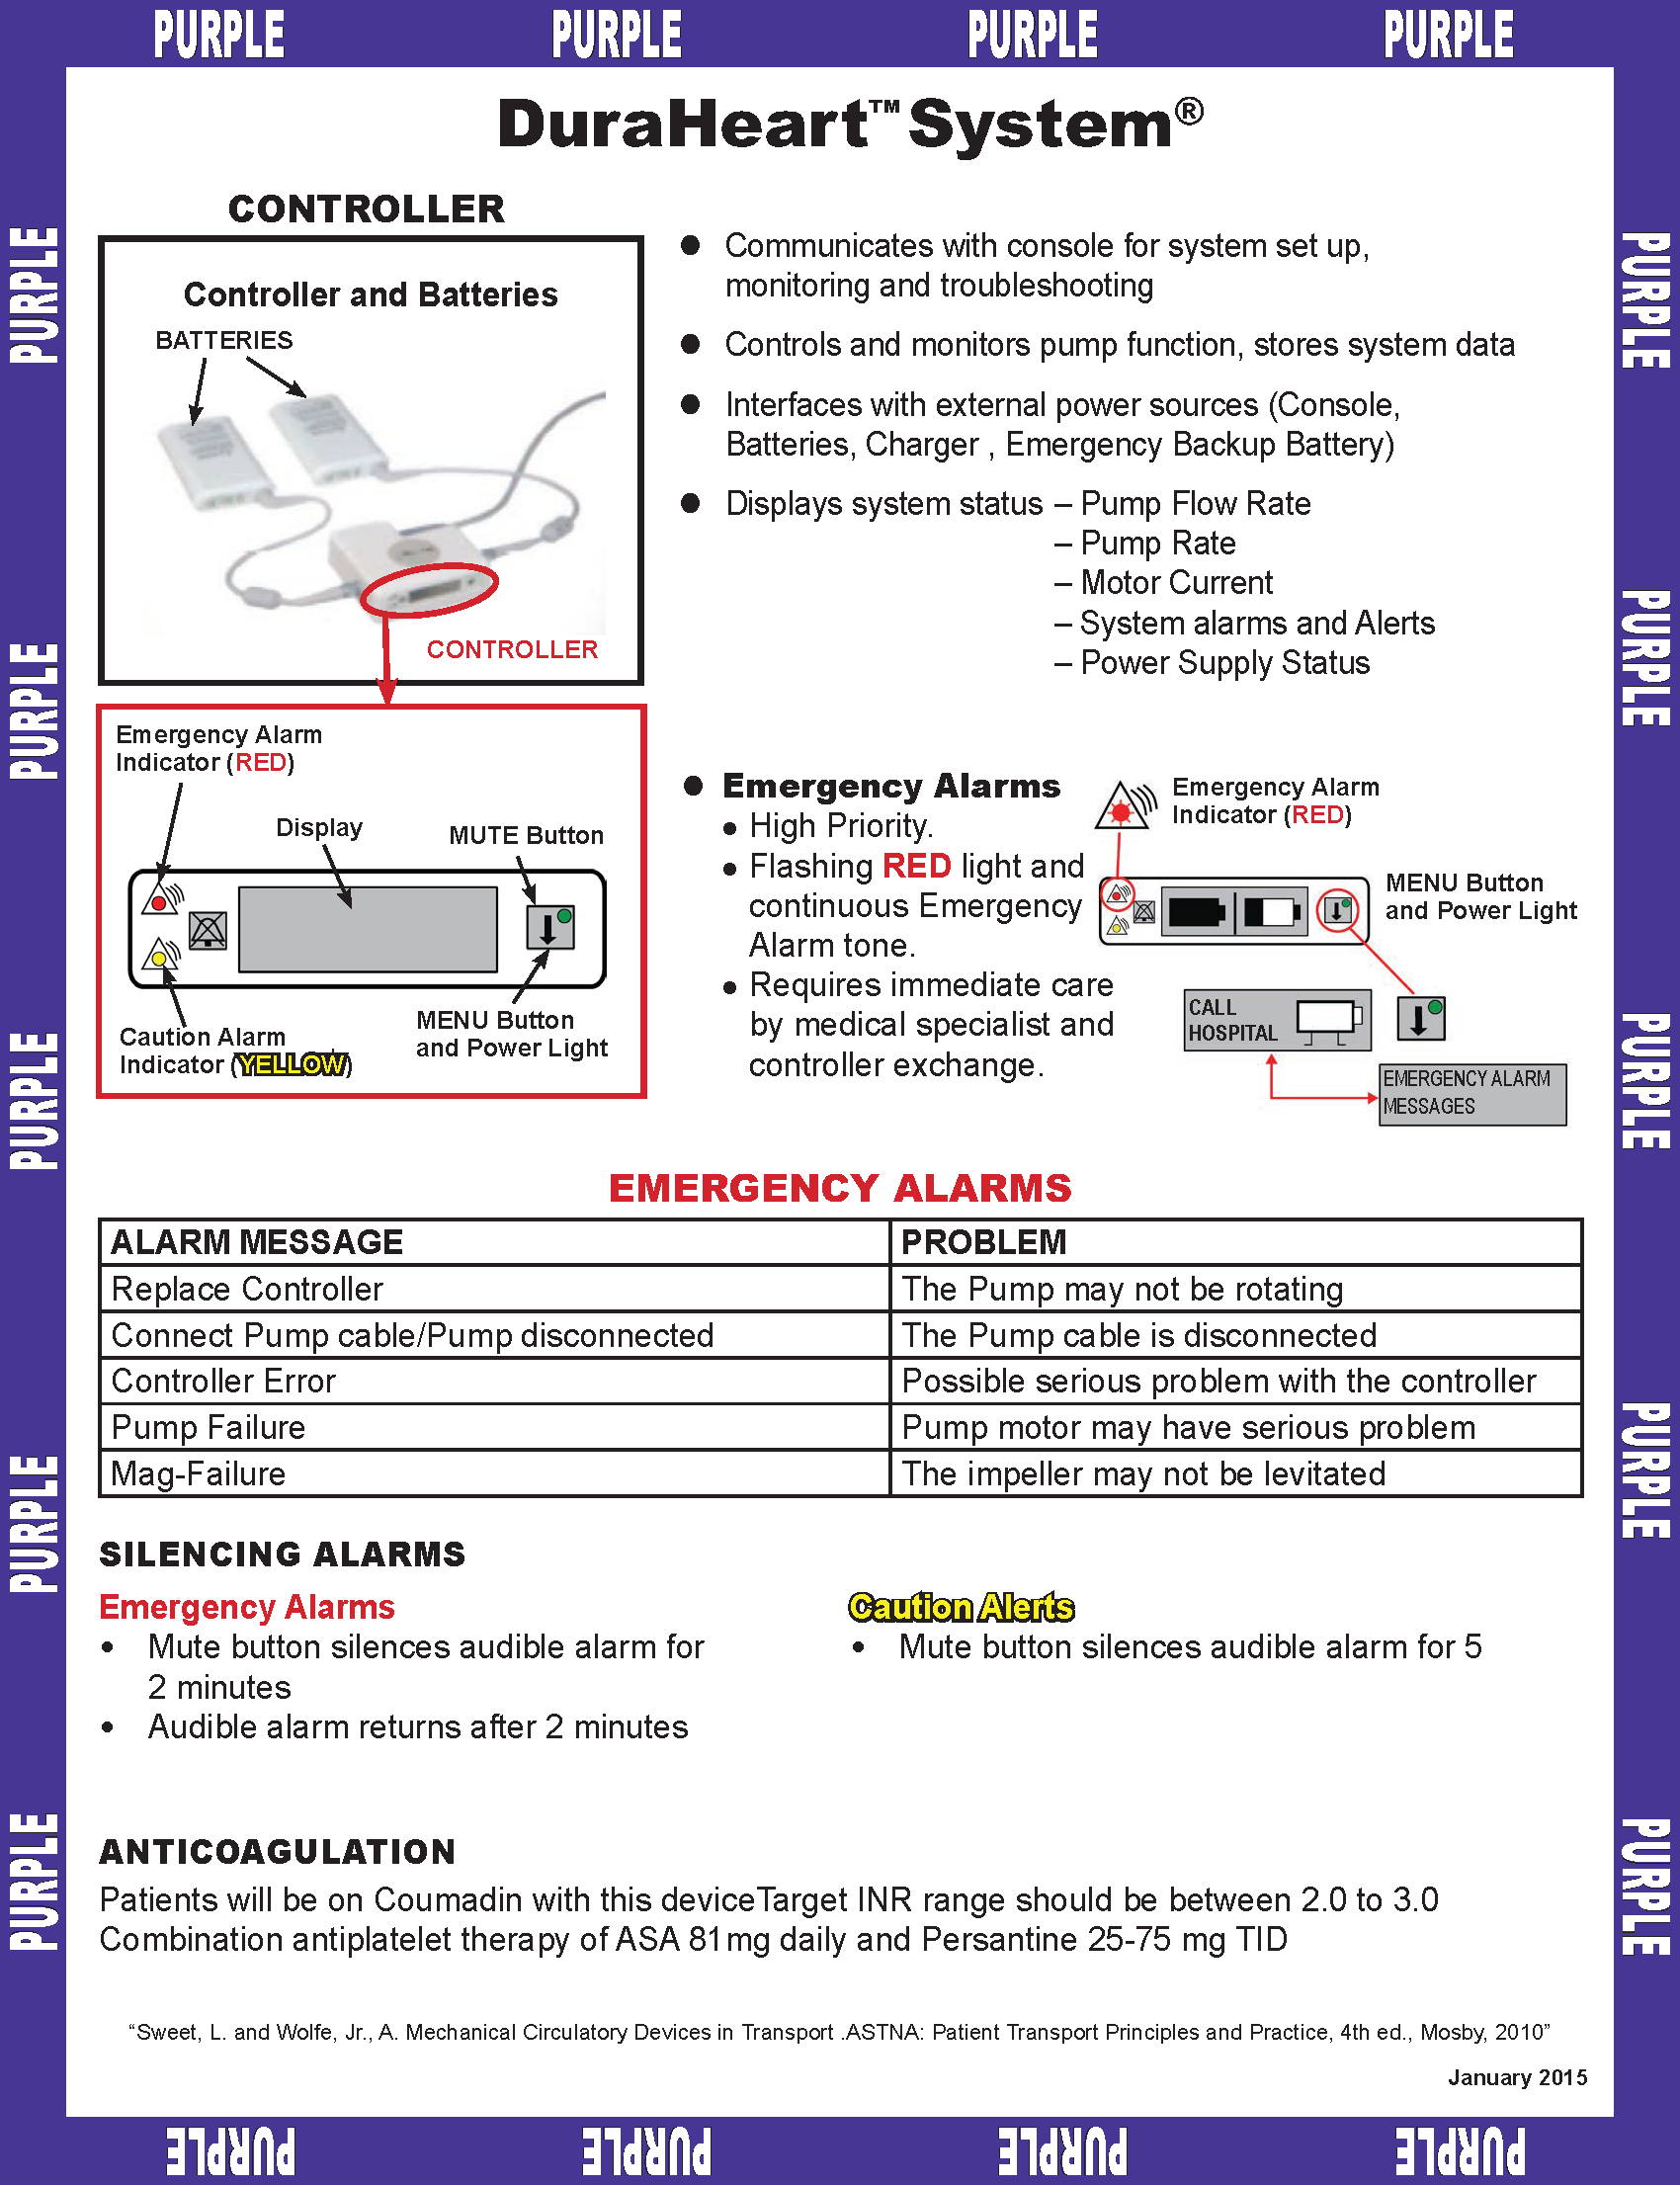 Ems Guidelines Duraheart_Page_5.png